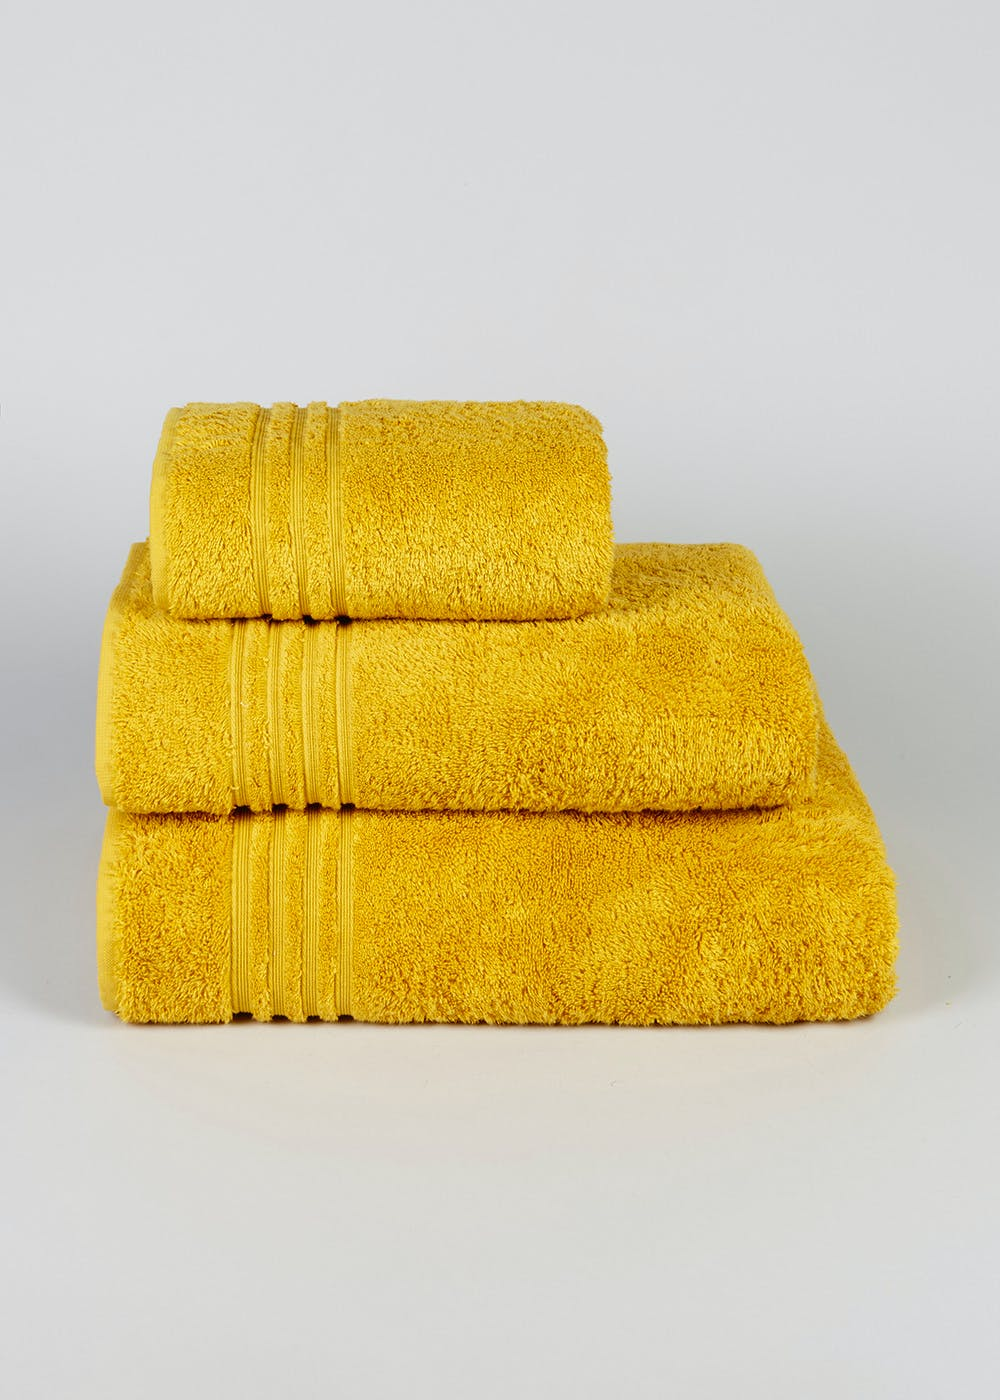 Egyptian Cotton Towels 700gsm